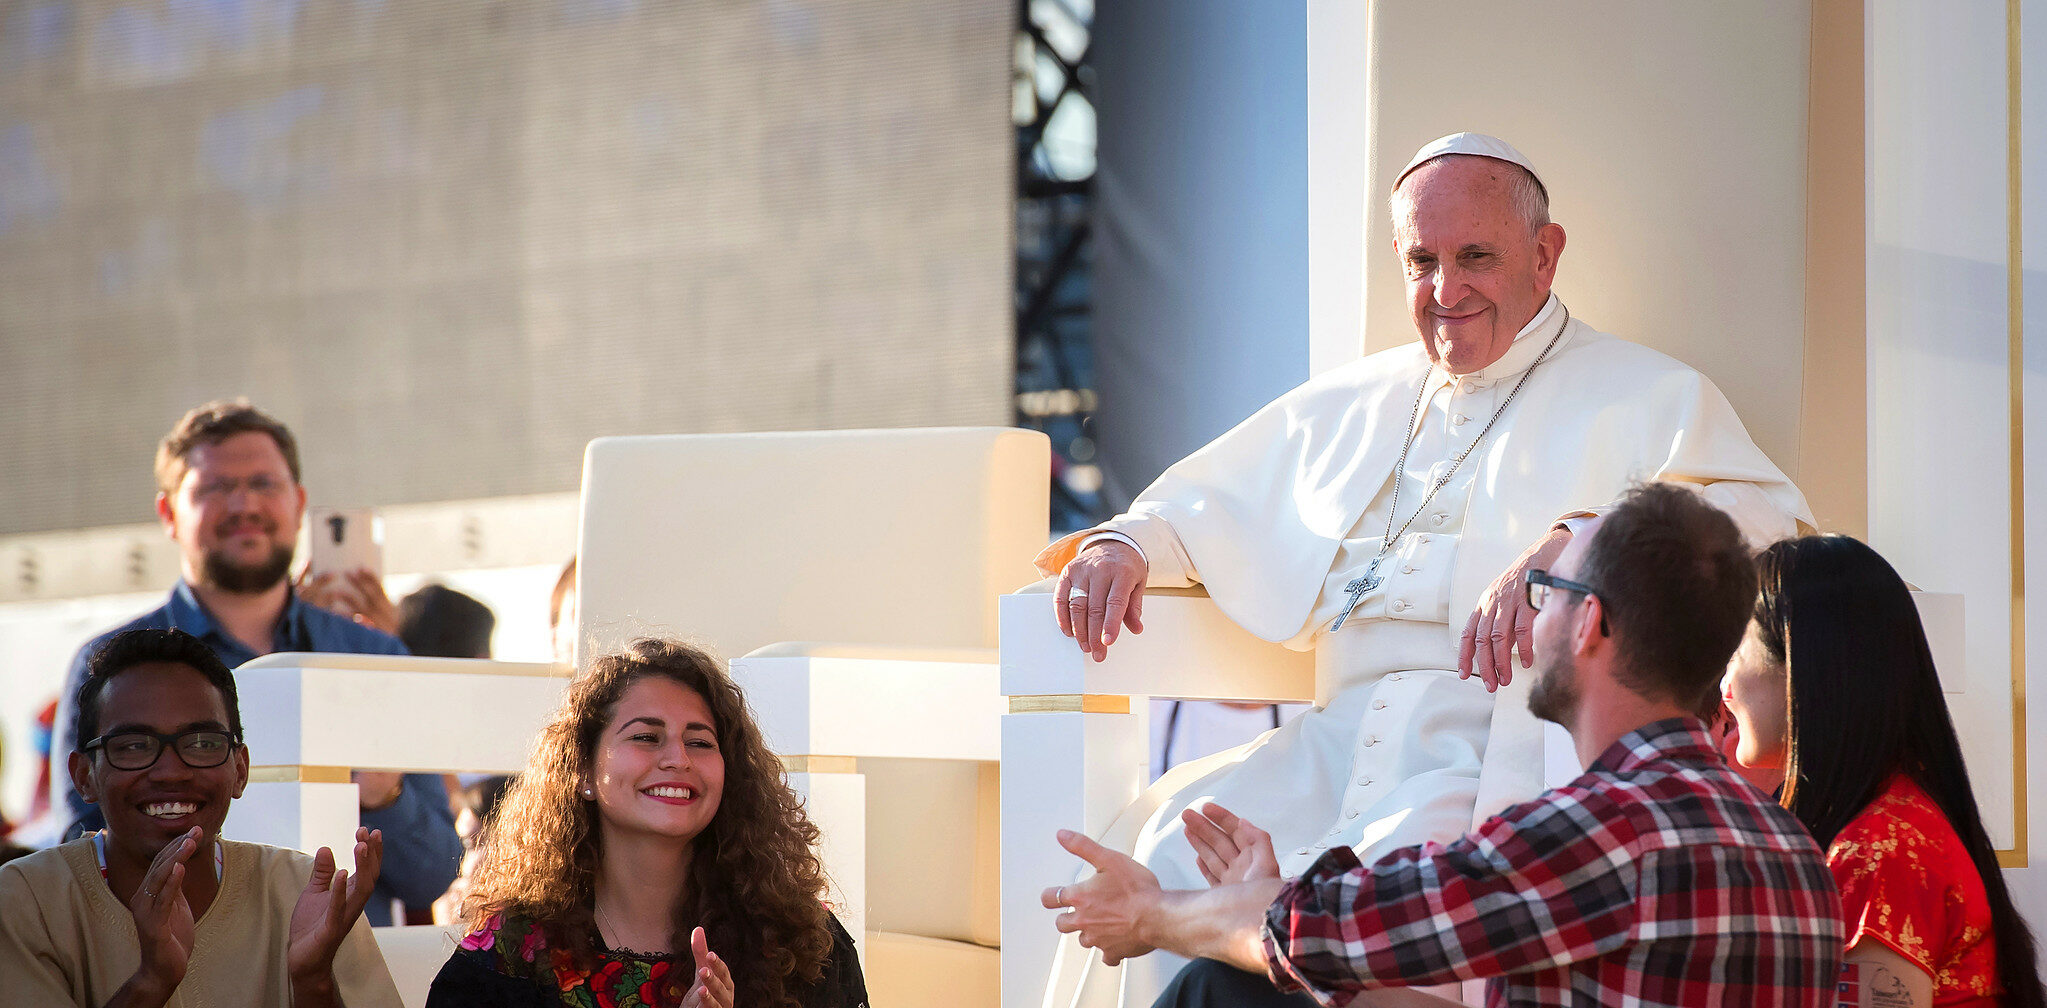 Pope Francis's vision of synodality